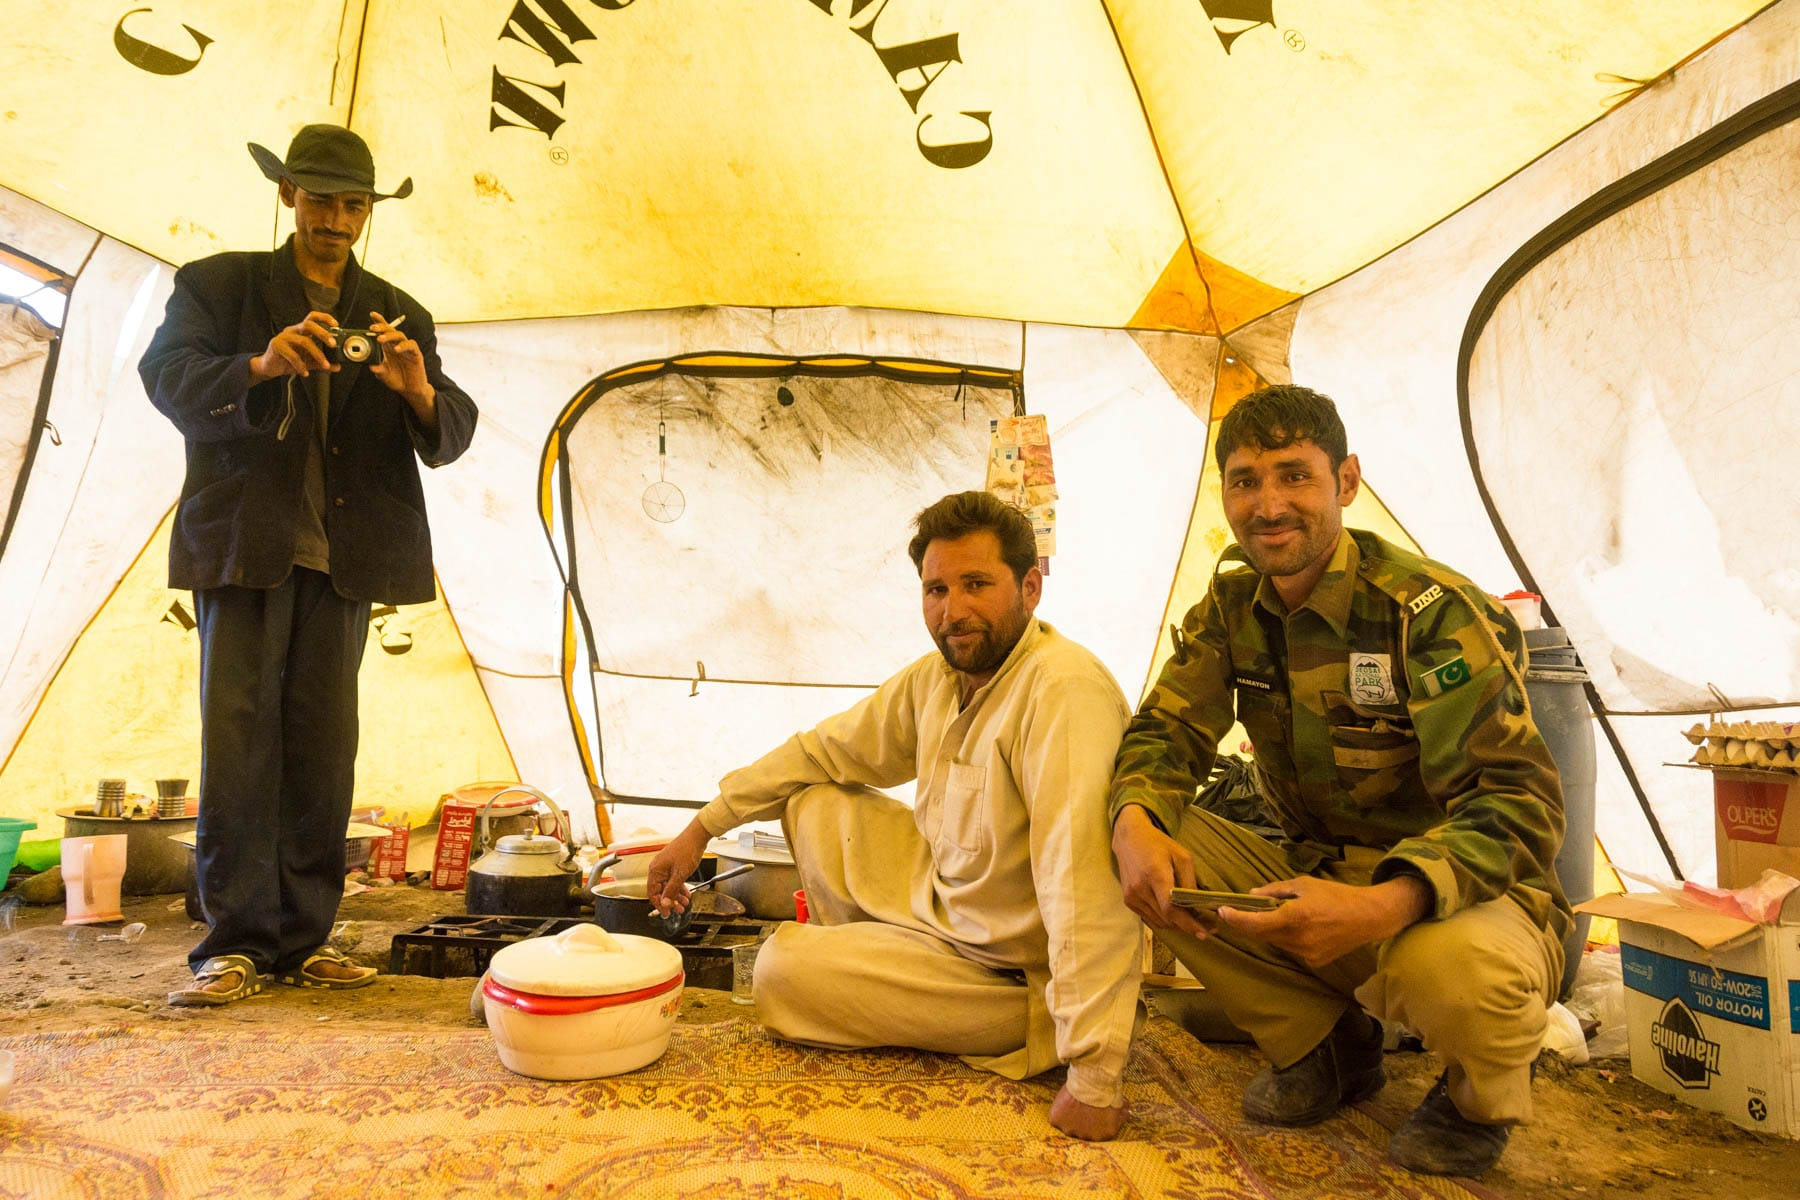 Is it safe for women to travel in Pakistan? - Super friendly male park rangers in Deosai, Pakistan - Lost With Purpose